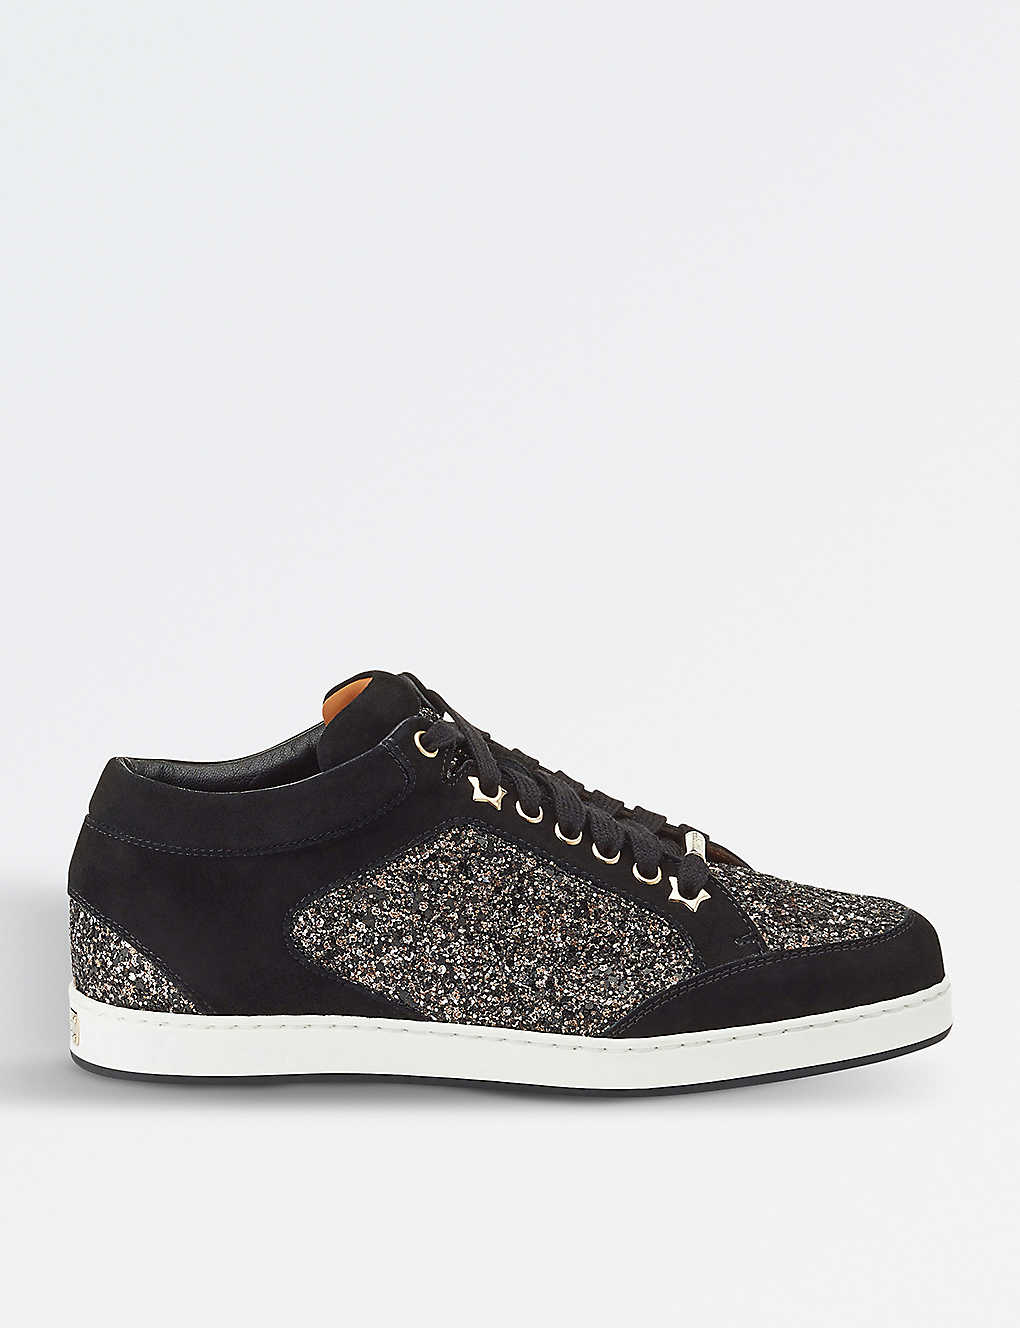 Sneaker MIAMI suede textile Glitter Logo black bronze Jimmy Choo London